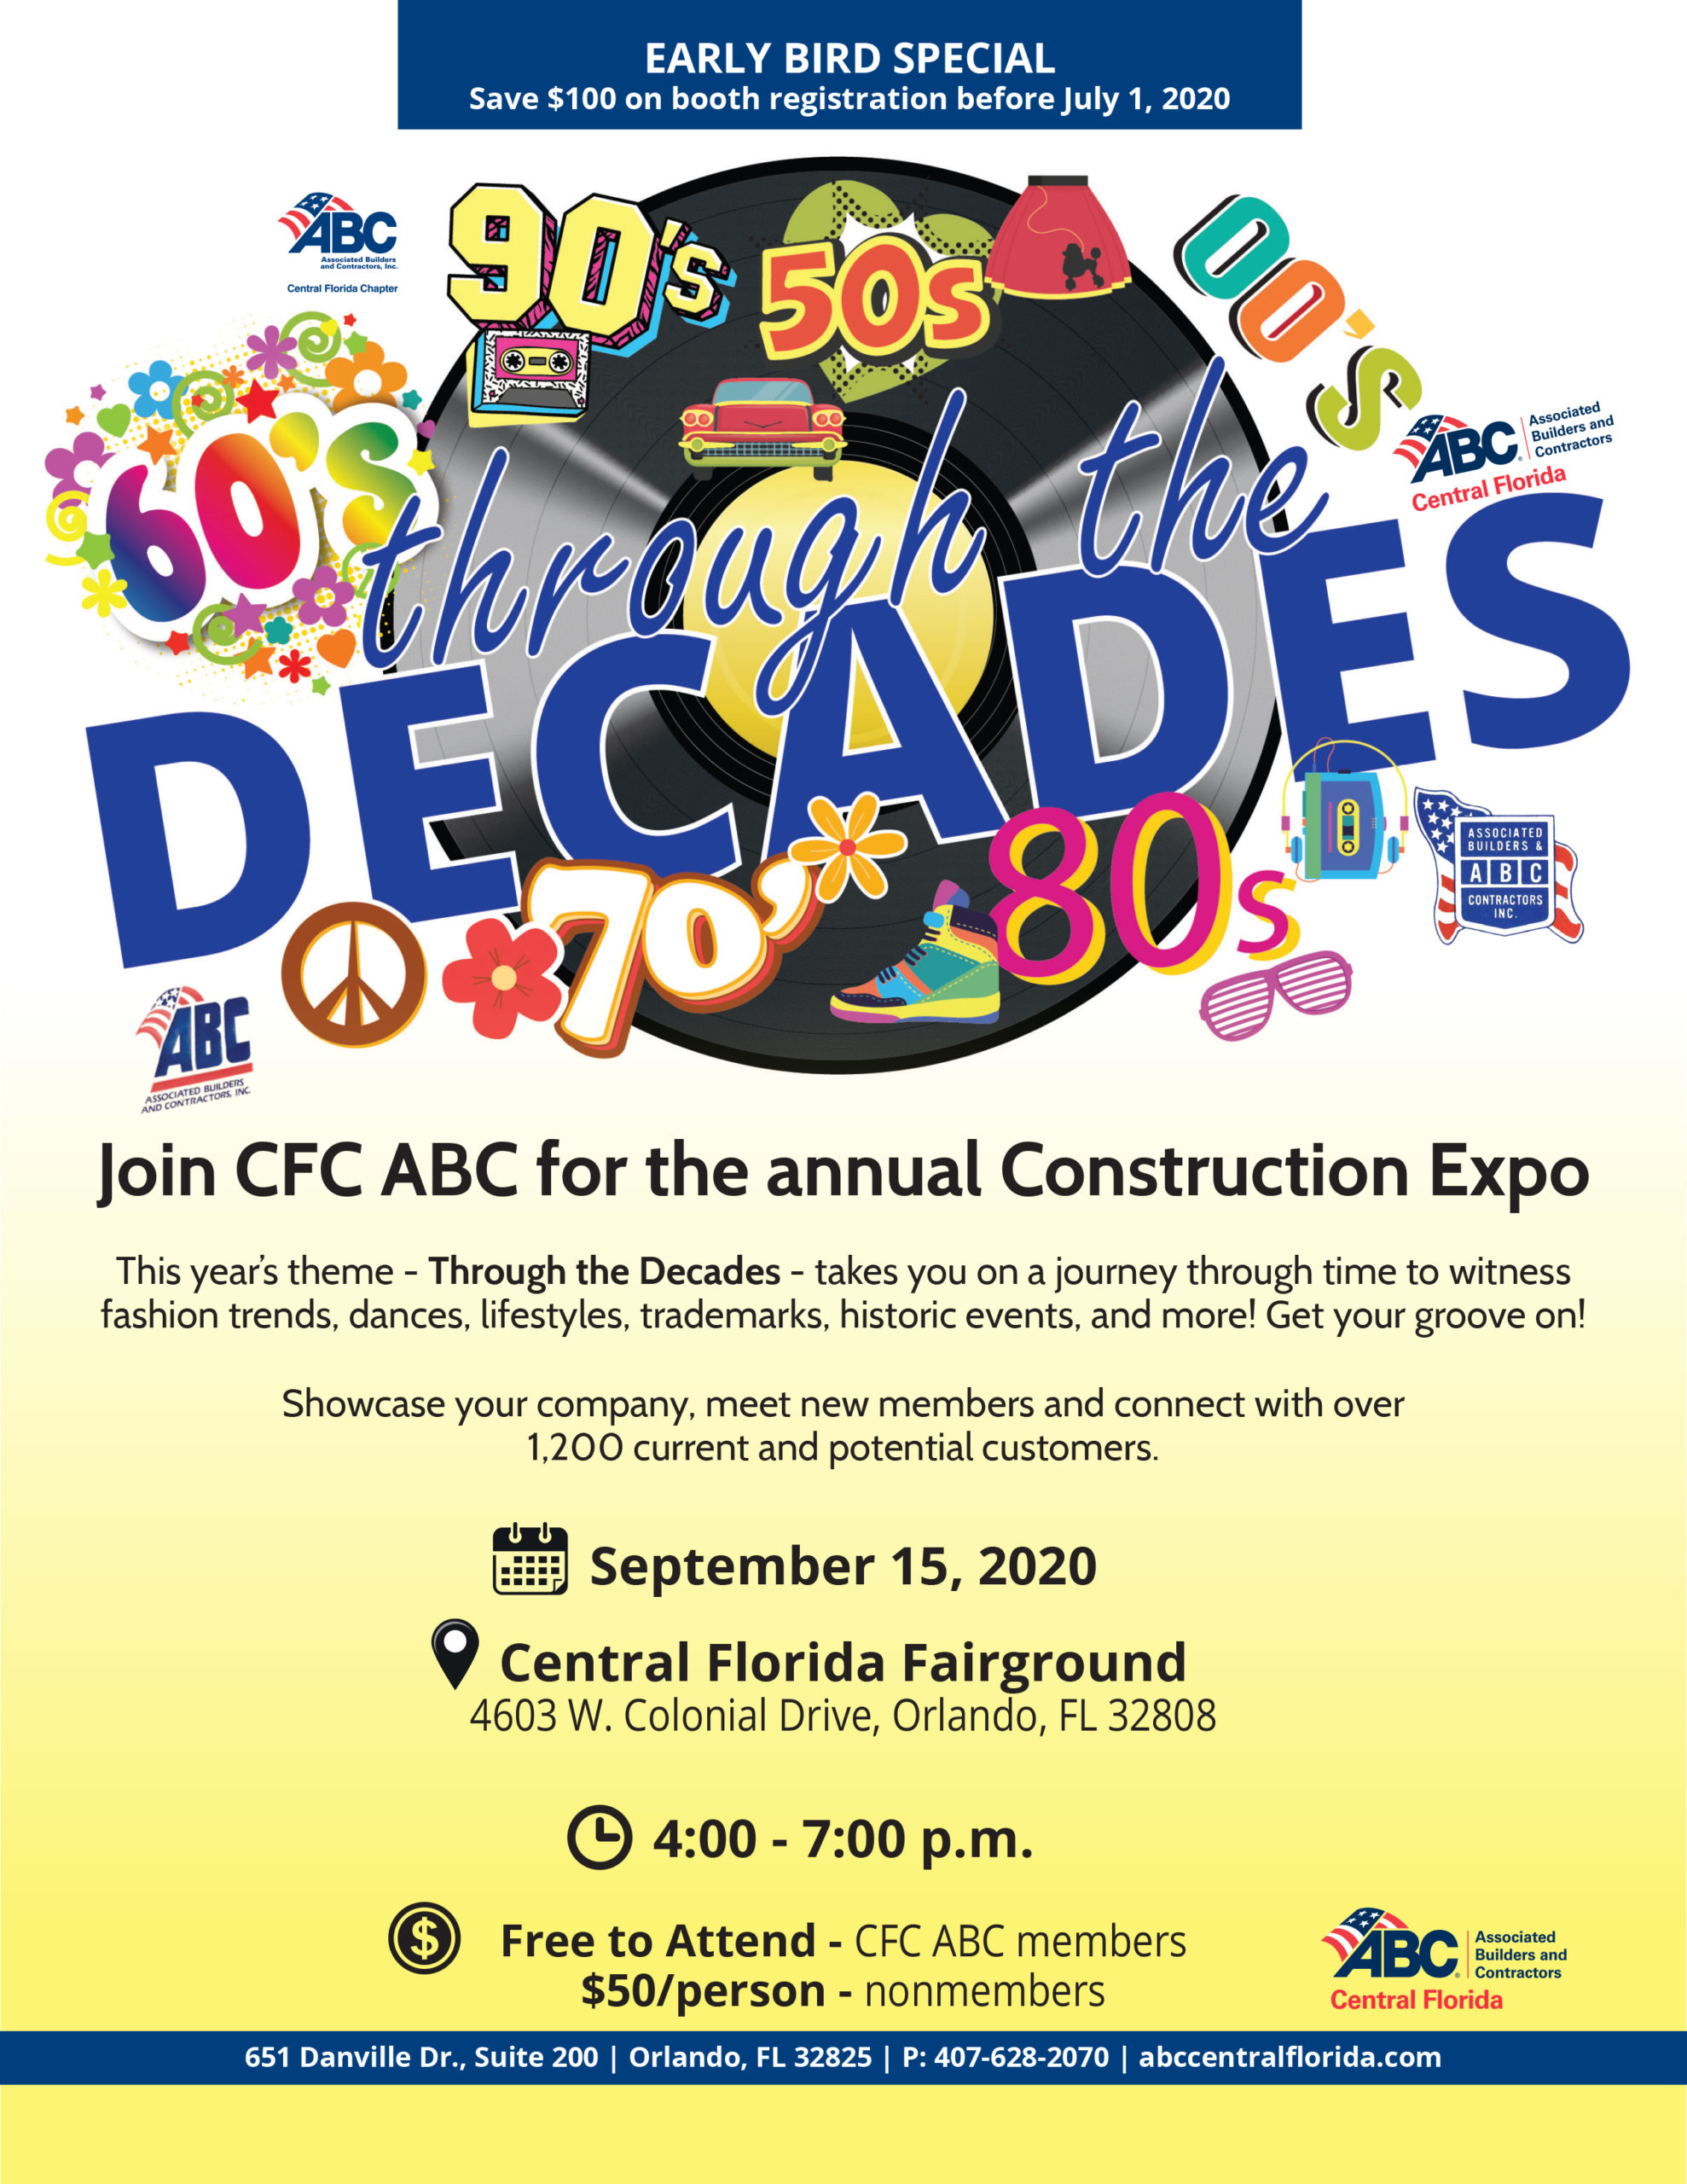 Construction Expo @ Central Florida Fairground